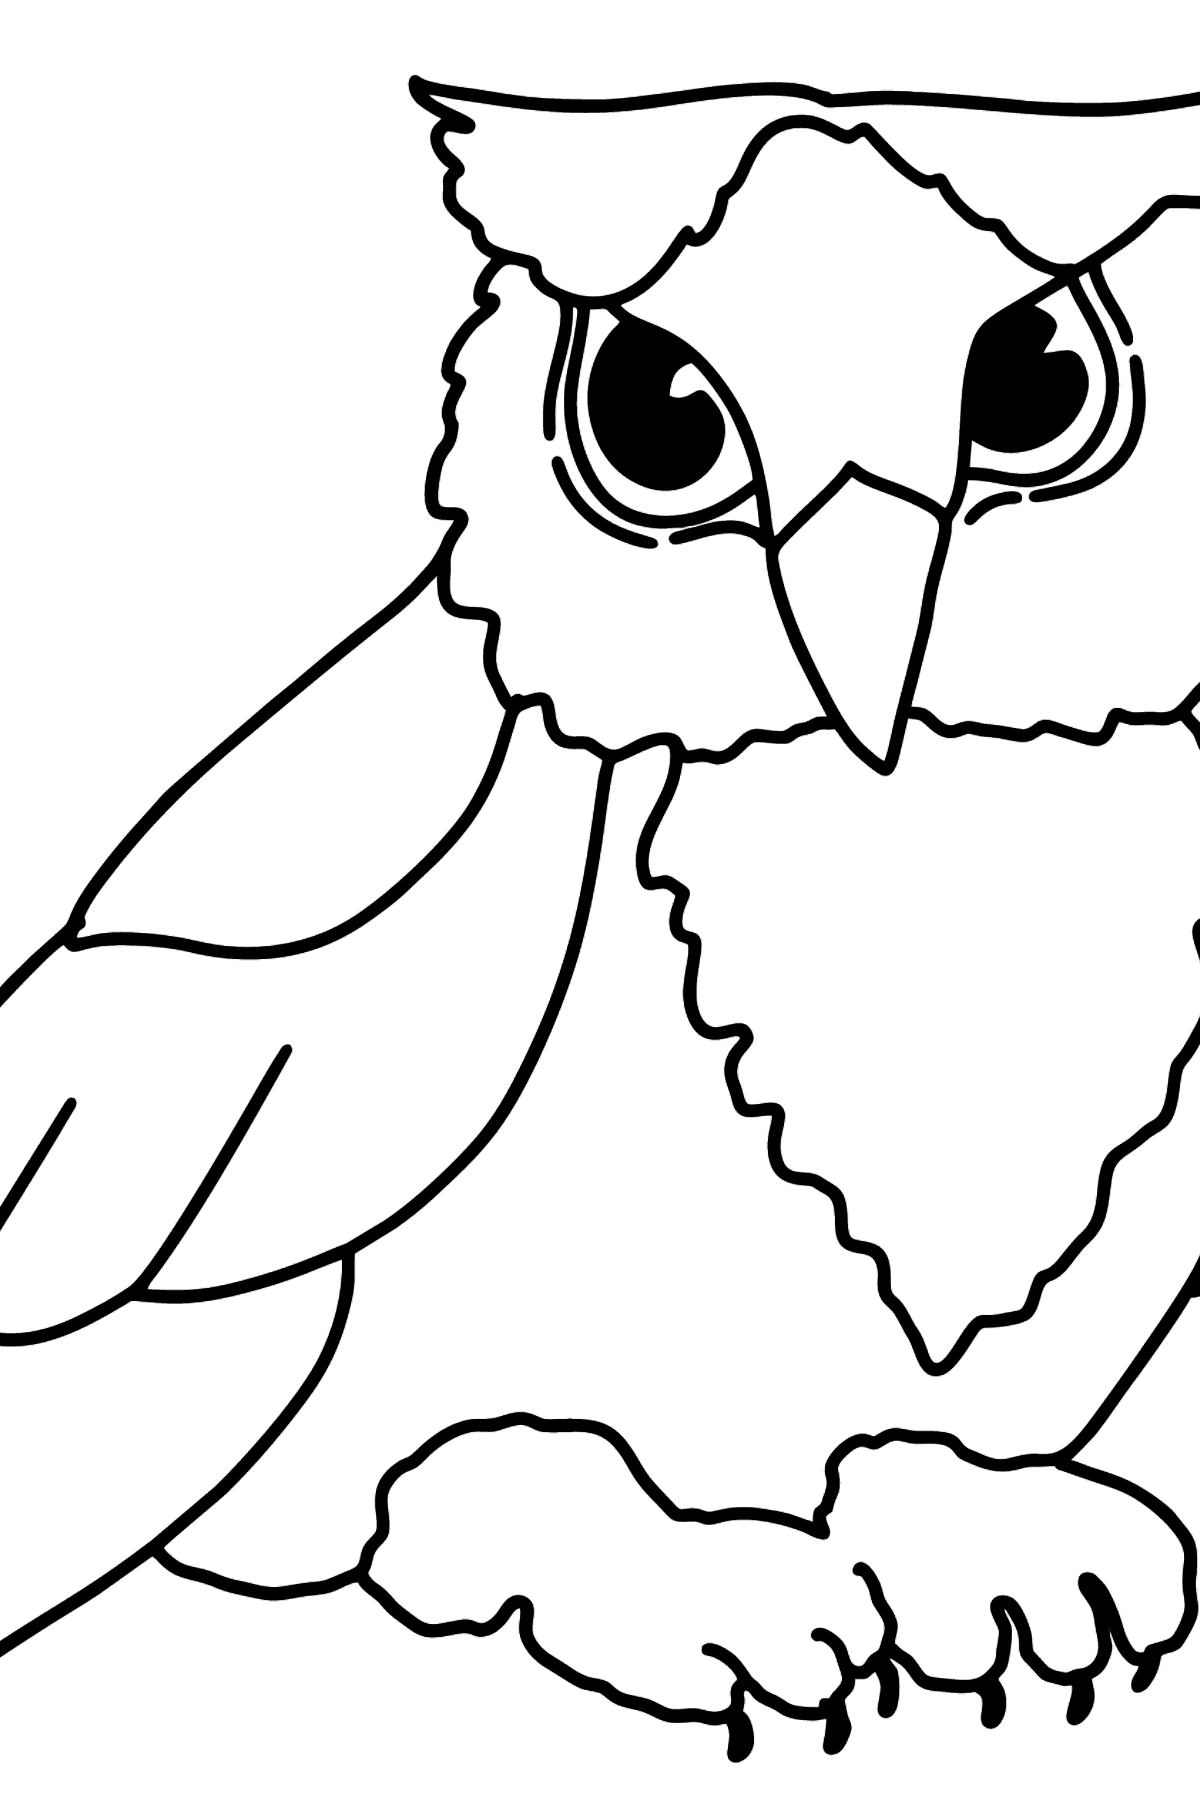 Bird coloring page - Owlet - Coloring Pages for Kids